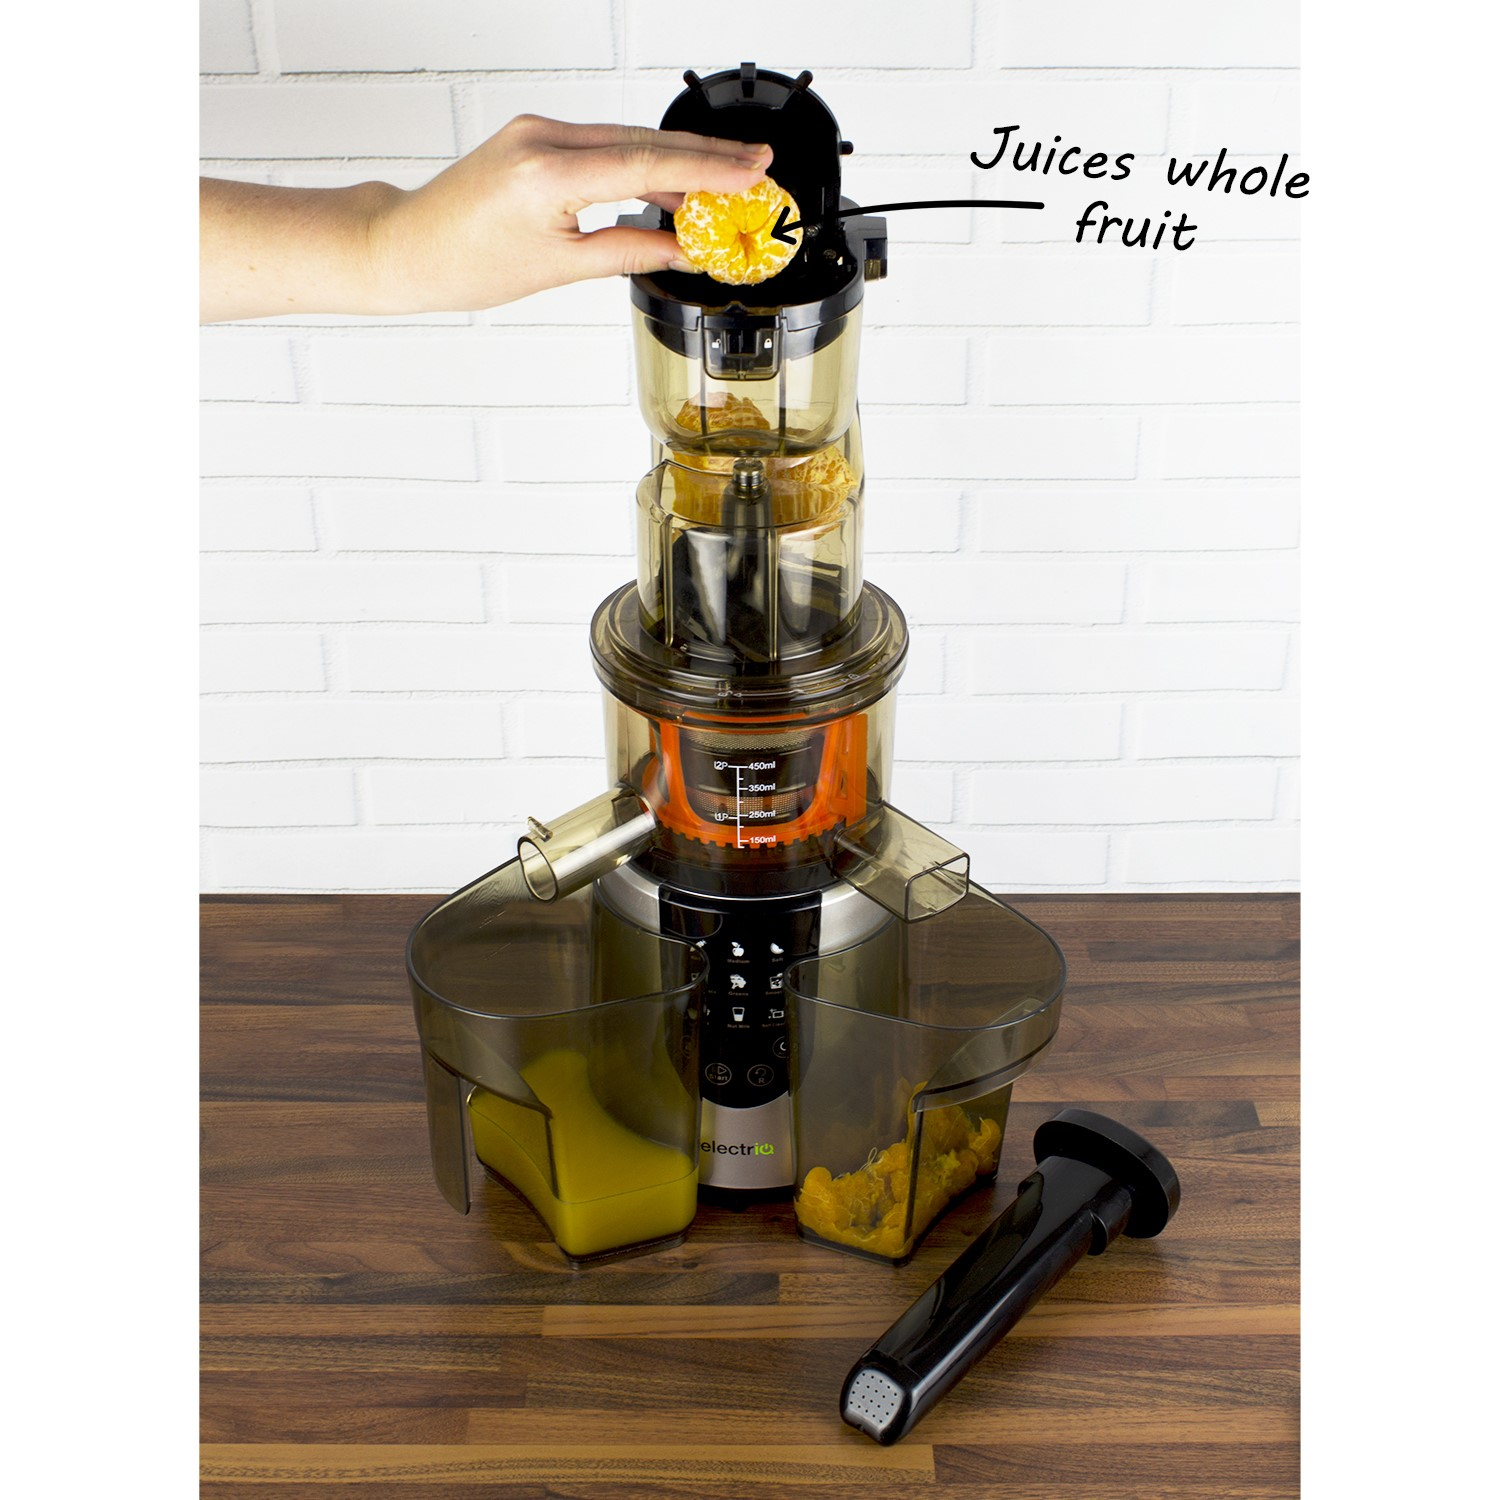 Slow Juicer For Greens : ELECTRIQ SLOW Whole Fruit Juicer perfect for Cold Pressed Greens Juices a IQWFSL - ?65.97 ...